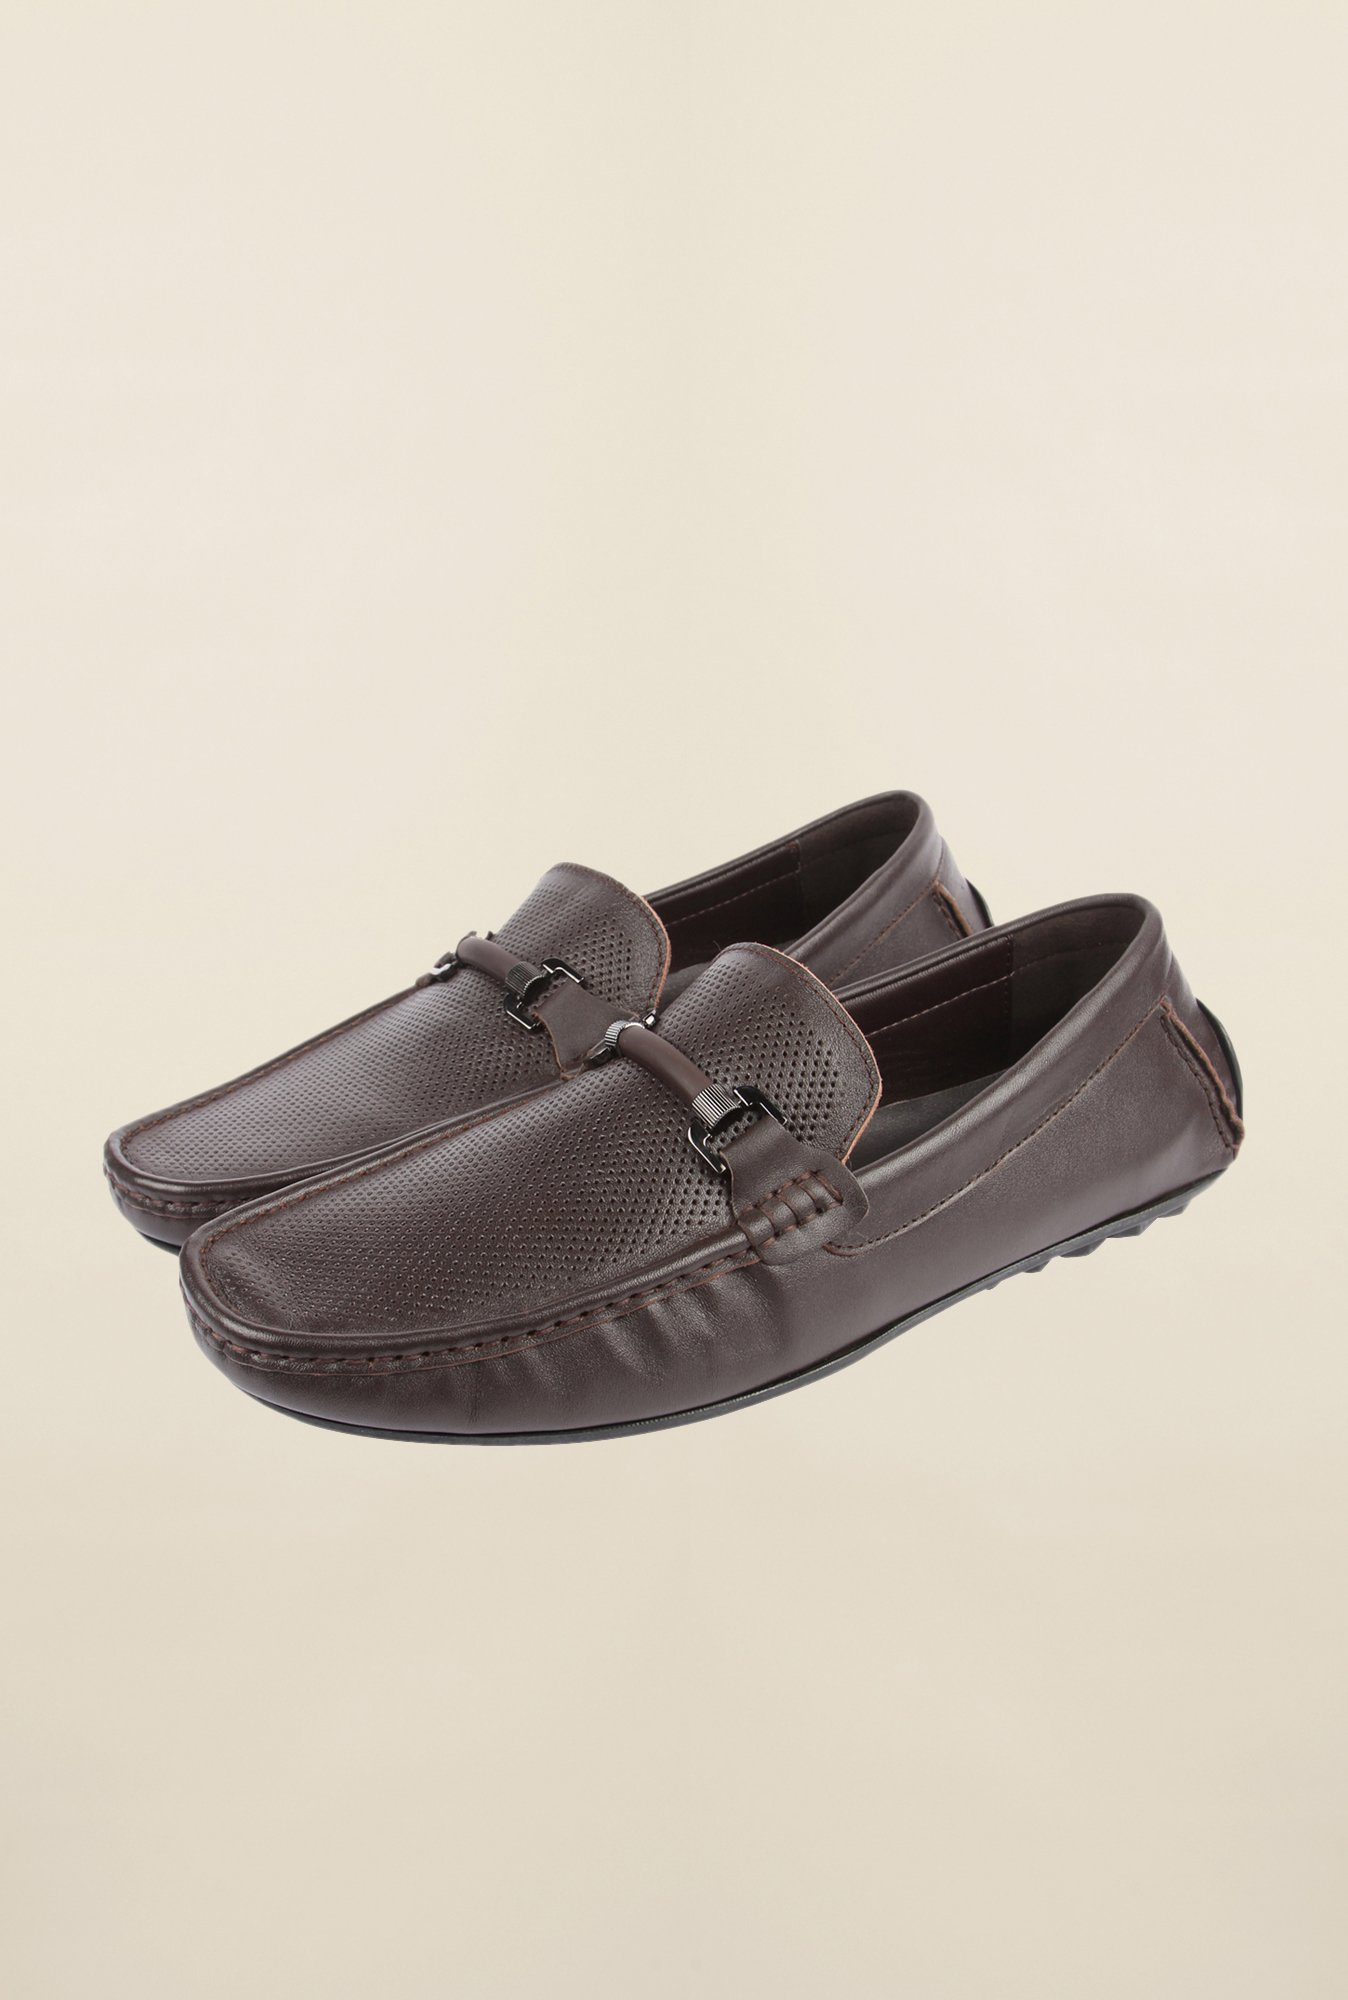 Cobblerz Dark Brown Leather Moccasin Shoes